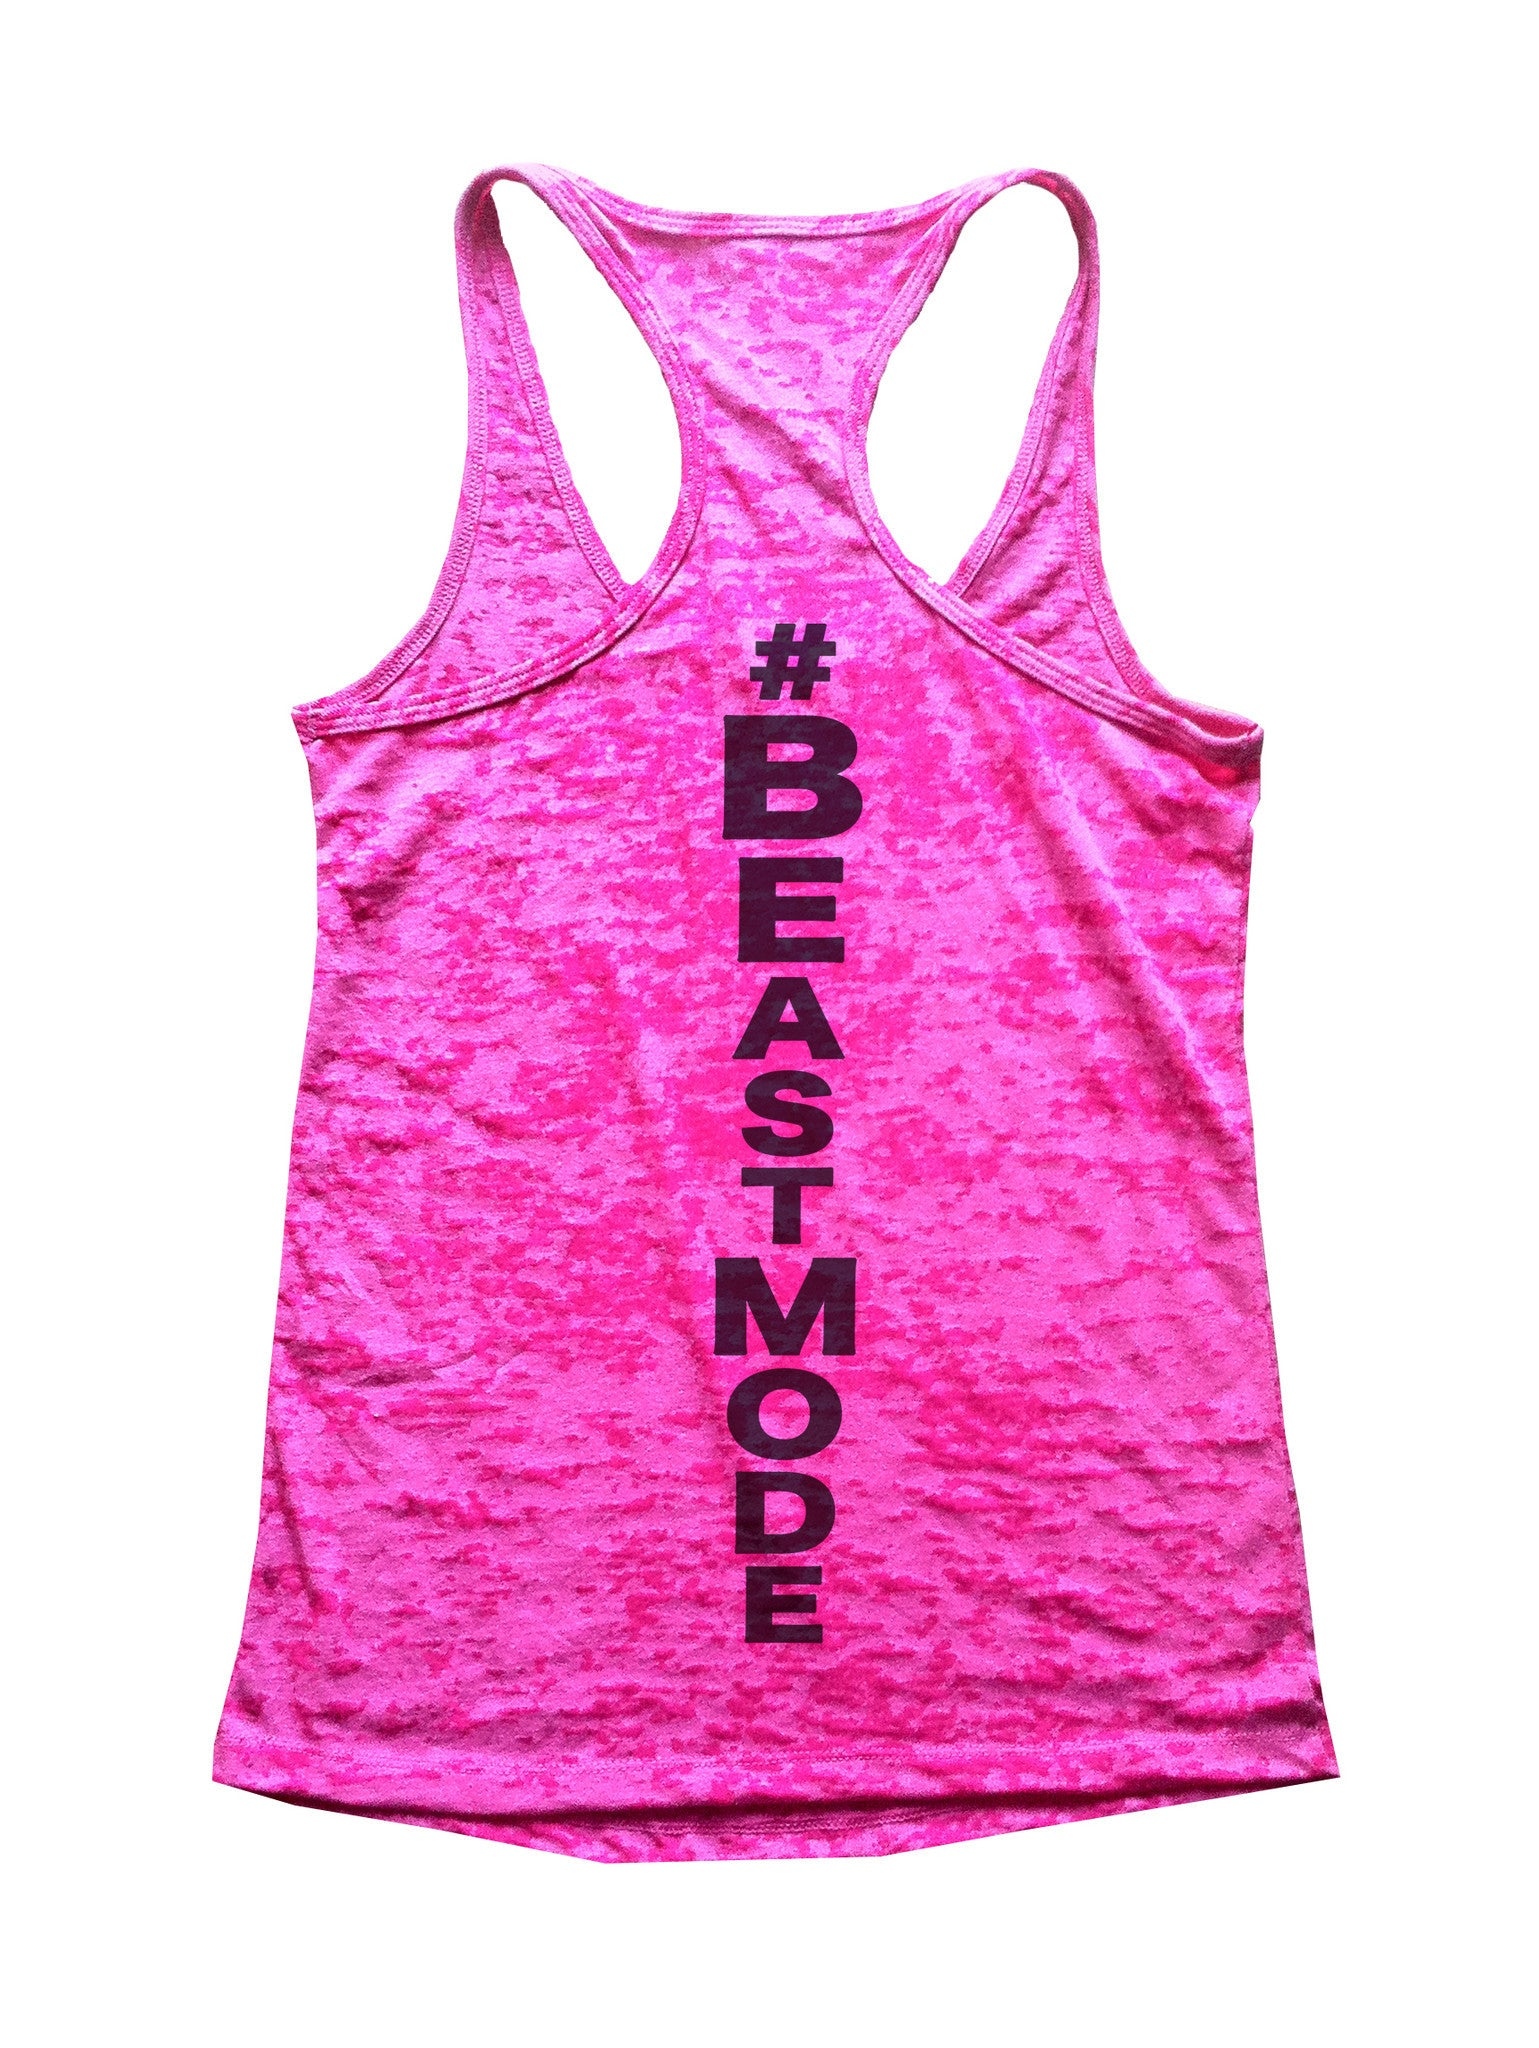 Beast Mode Burnout Tank Top By BurnoutTankTops.com - 526 - Funny Shirts Tank Tops Burnouts and Triblends  - 1